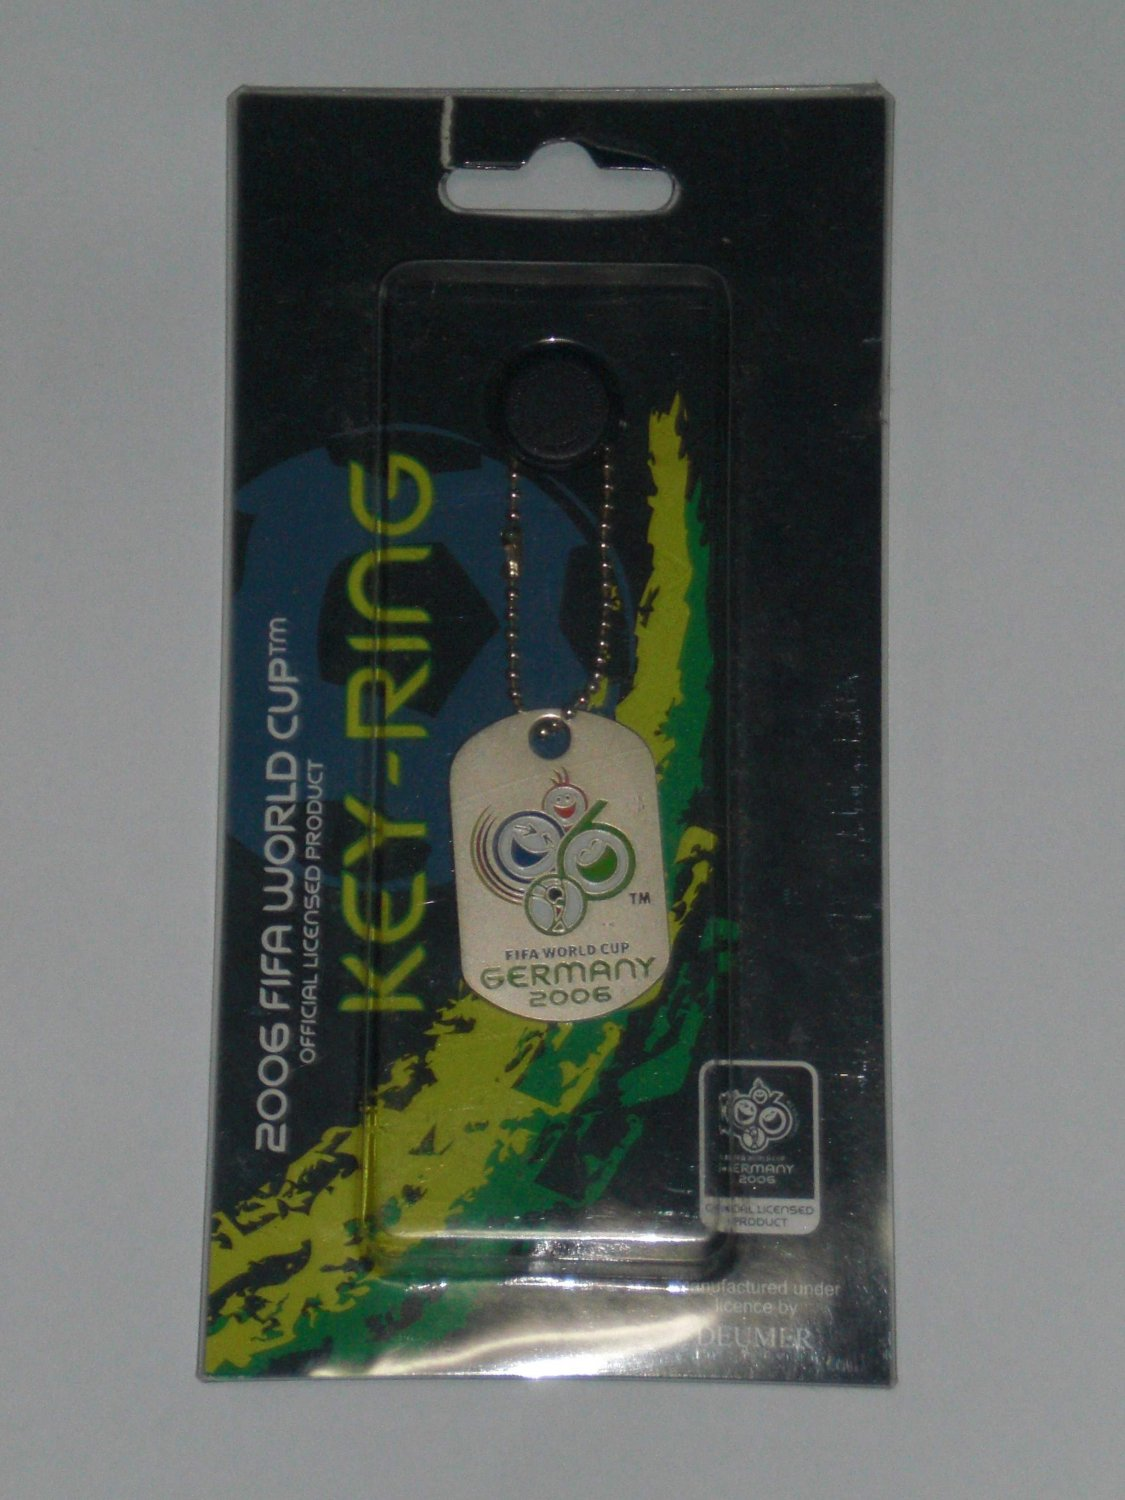 Official Fifa World Cup 2006 (Germany) Key Ring - 09